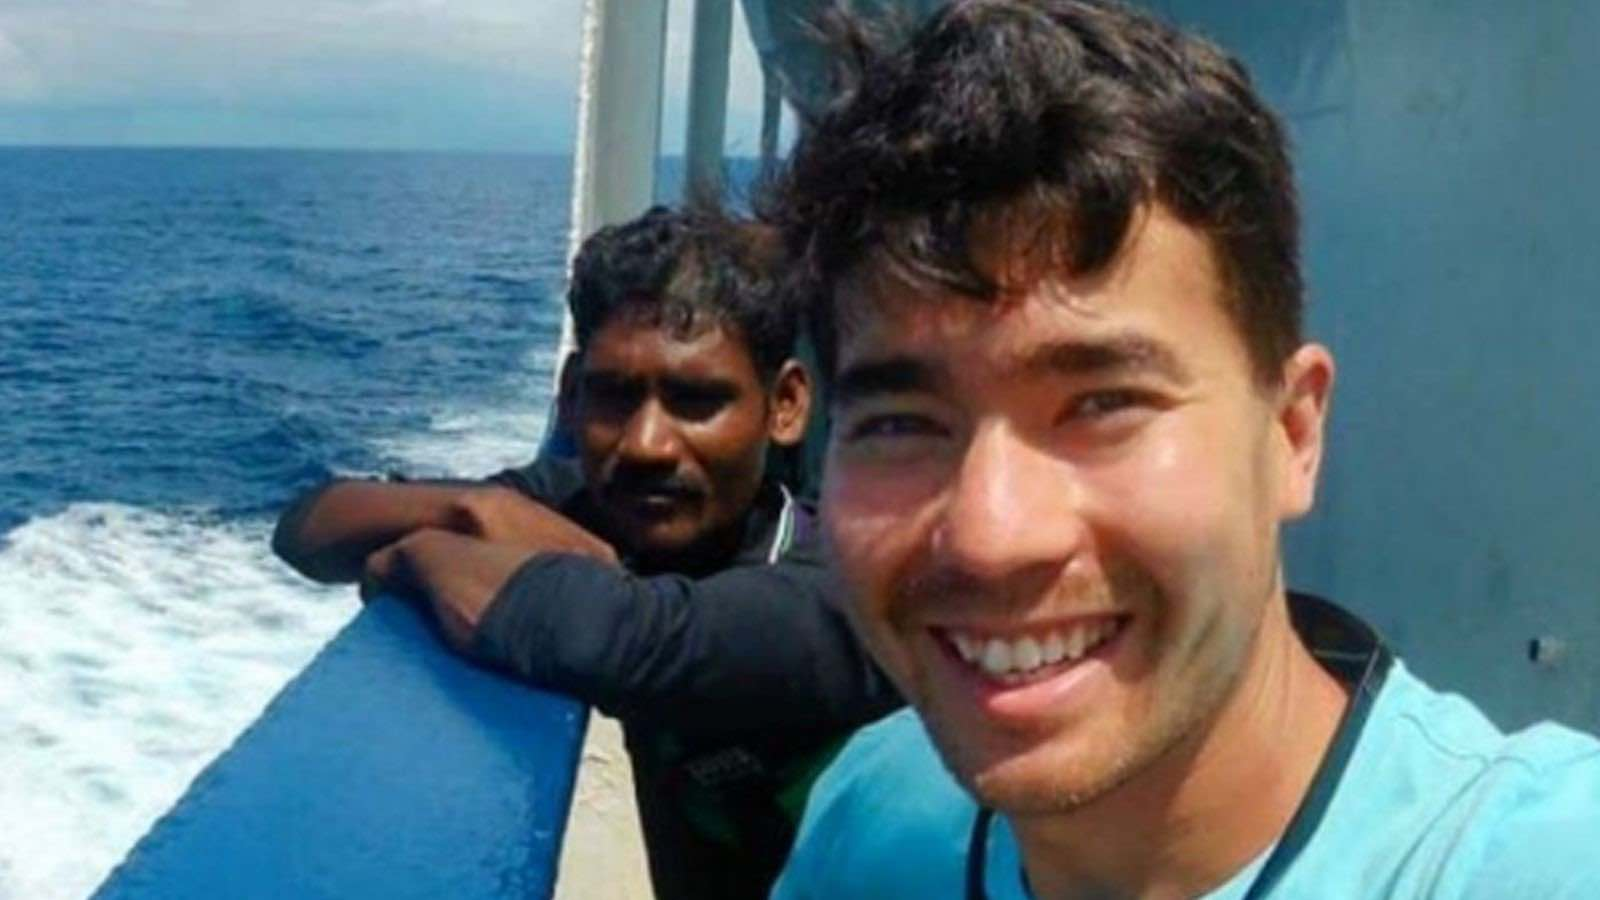 John Allen Chau: Body retrieval delayed